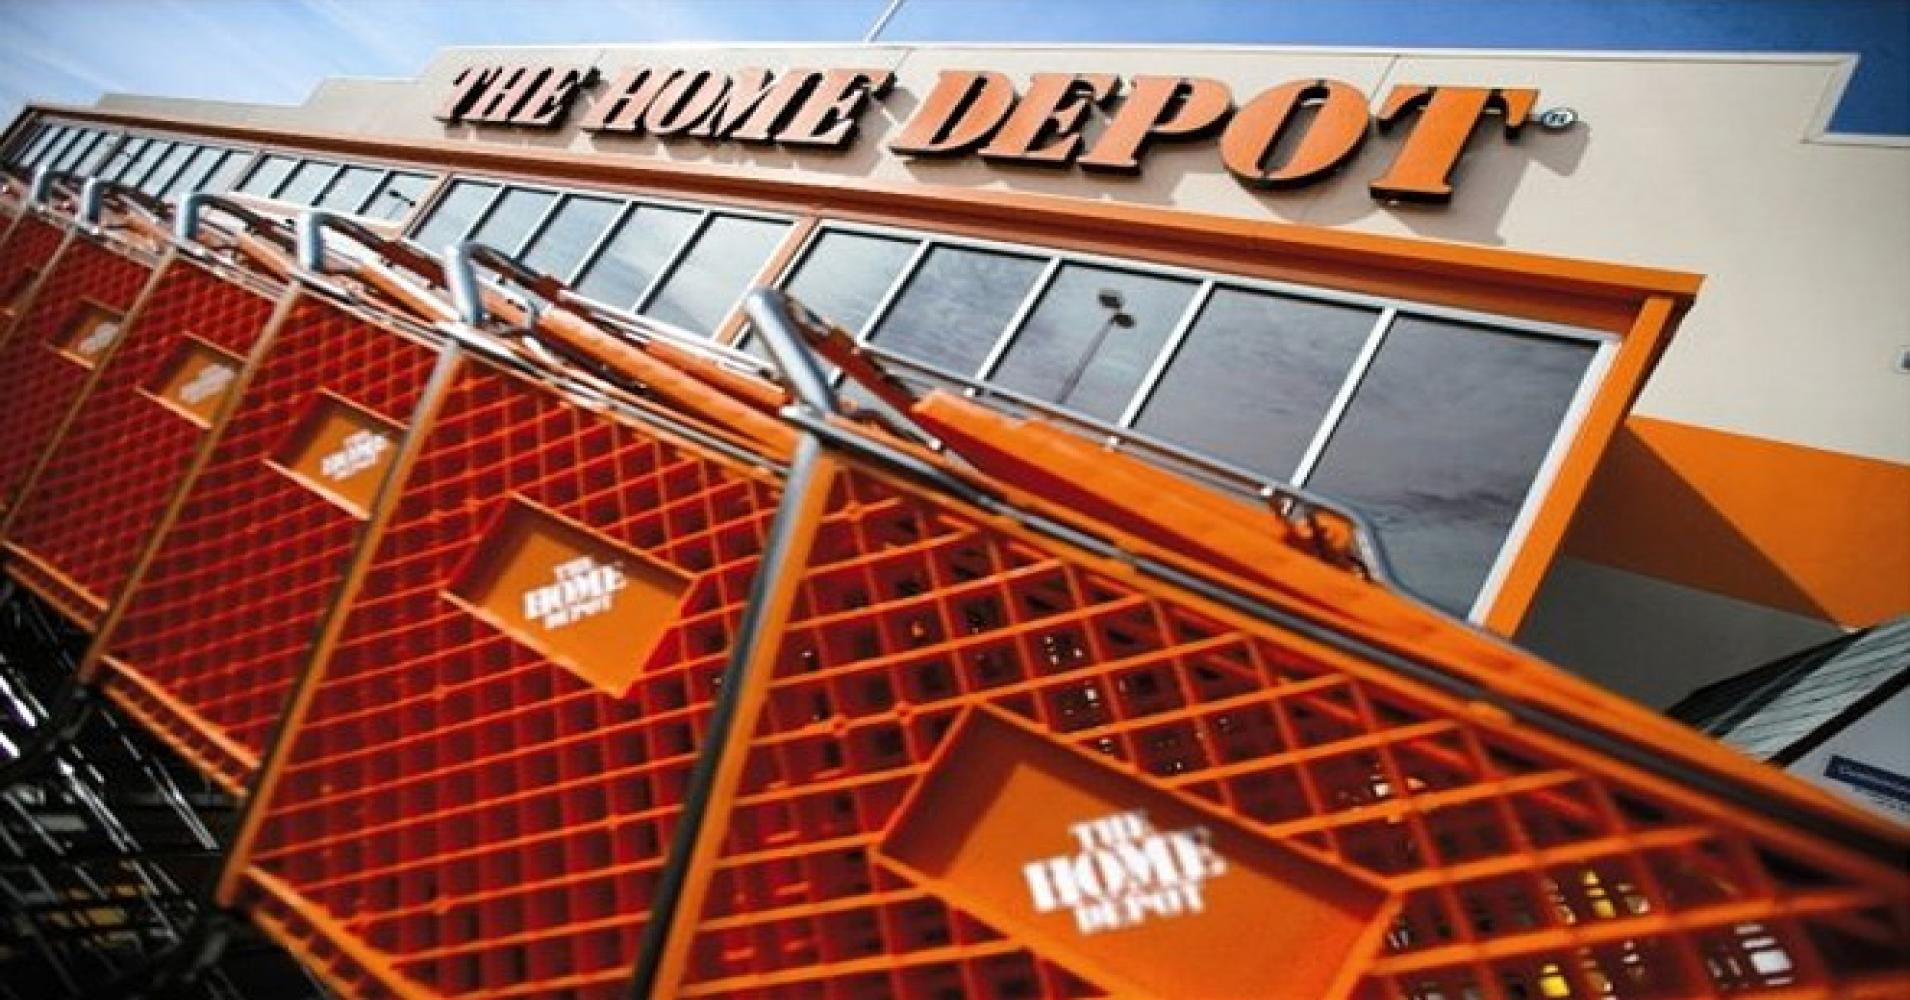 Home Depot Home : Alert multiple home depot products recalled breaking